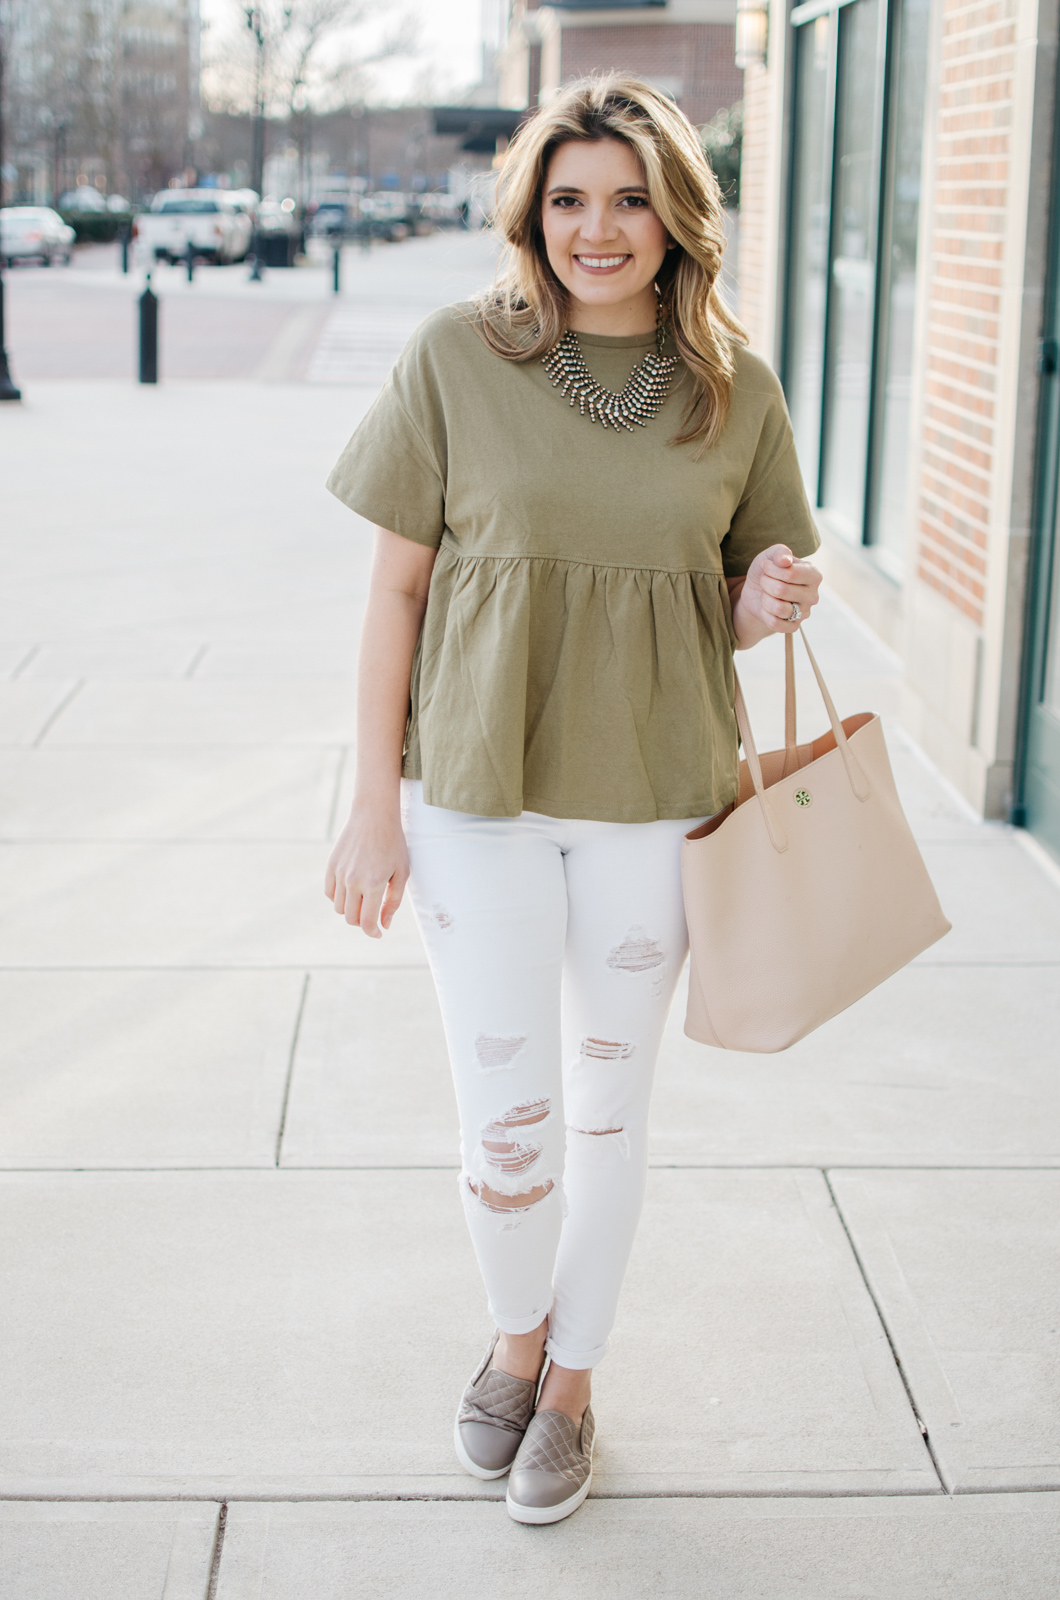 spring outfit mom style - casual mom outfit ideas. Click through for more cute casual outfits or to shop this look! bylaurenm.com